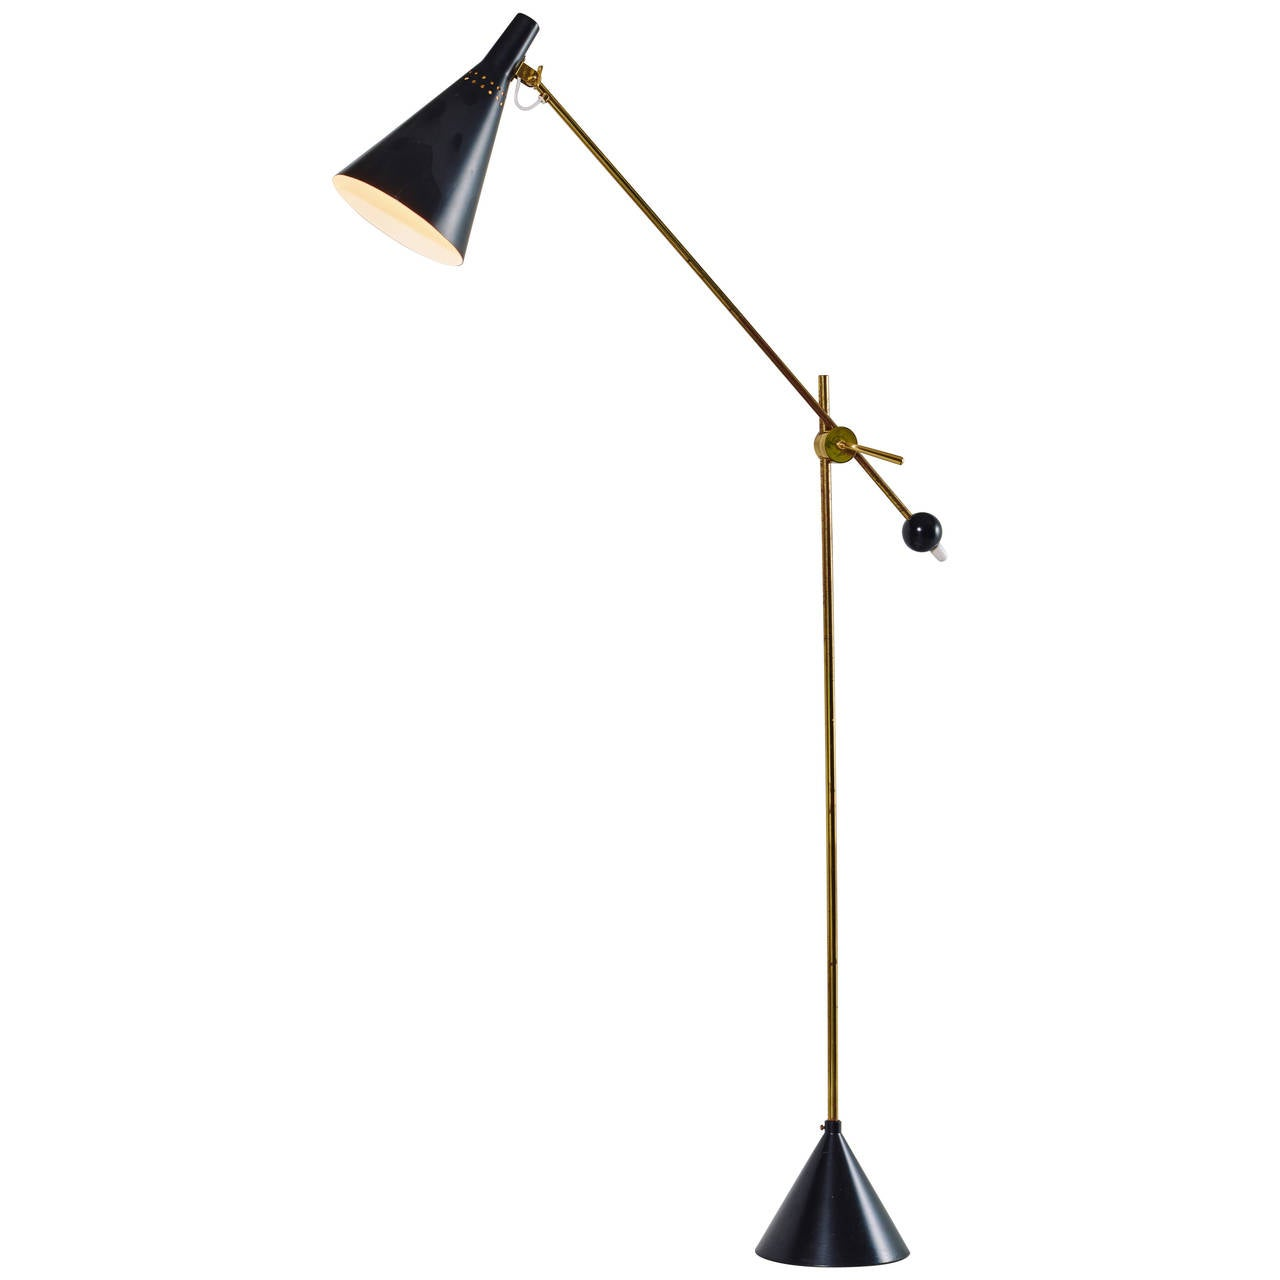 Tapio Wirkkala Floor Lamp, Model K10-11, 1958